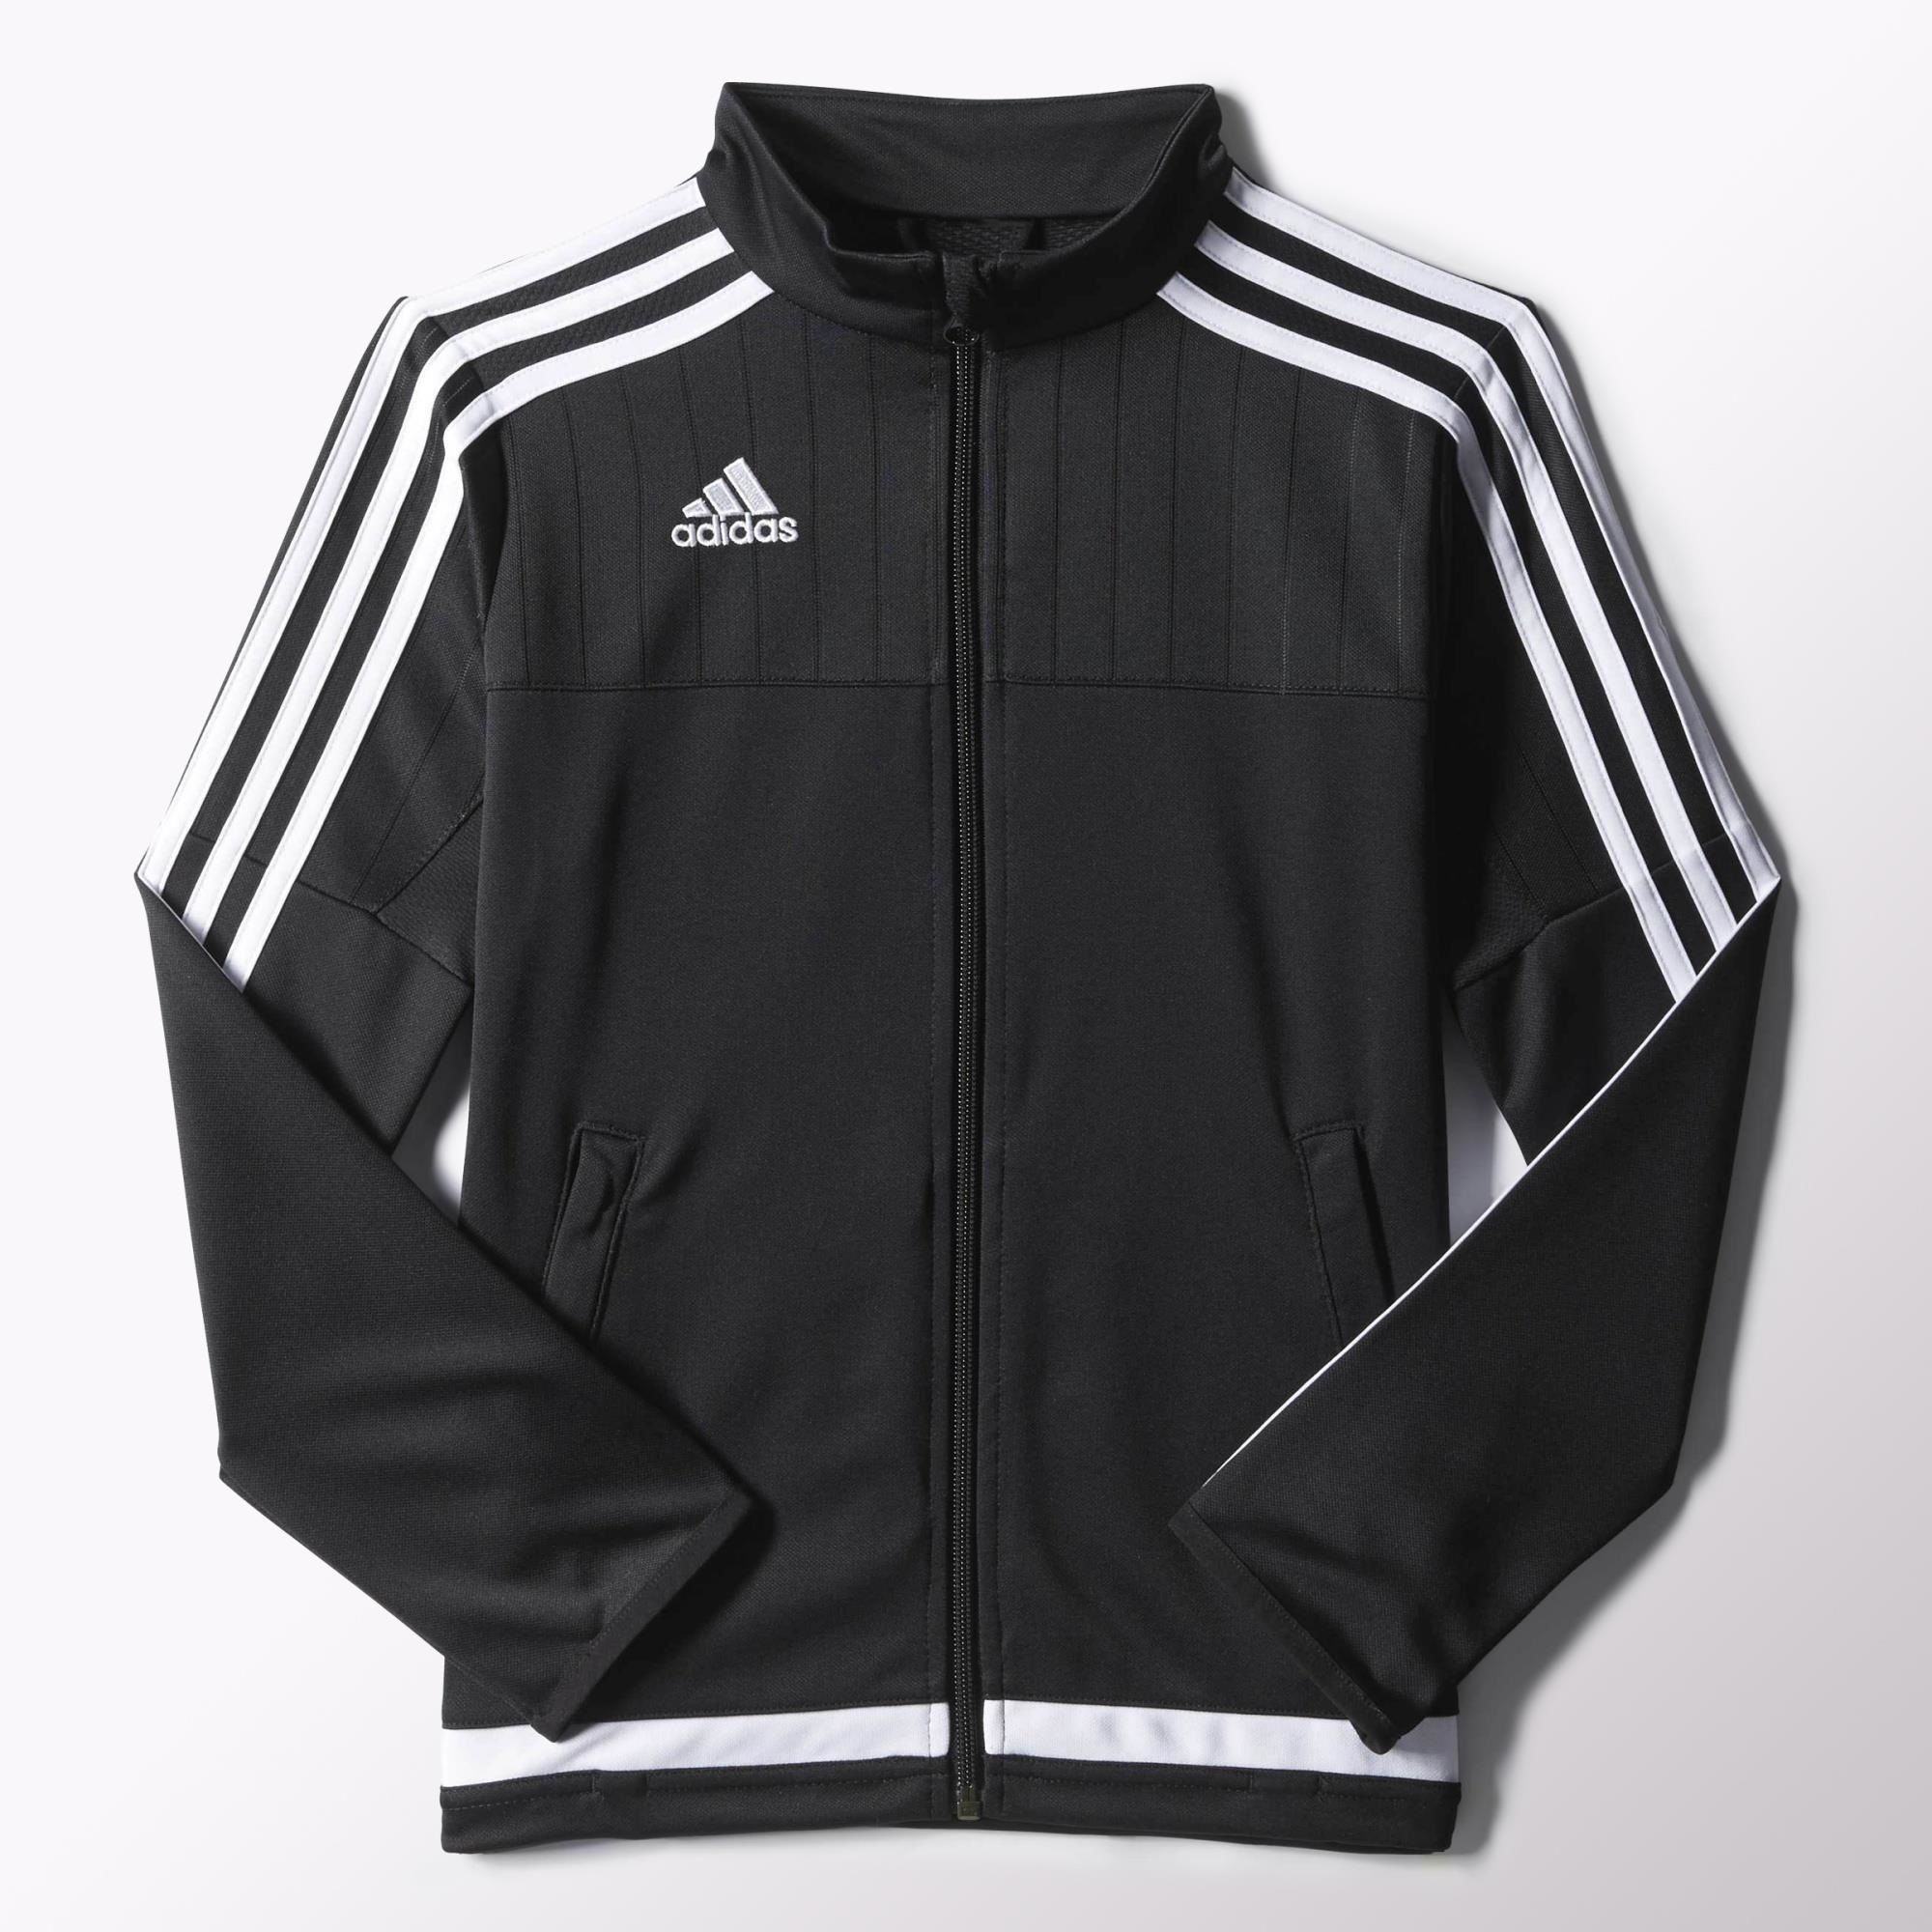 This junior boys' soccer jacket keeps you covered when you're ...